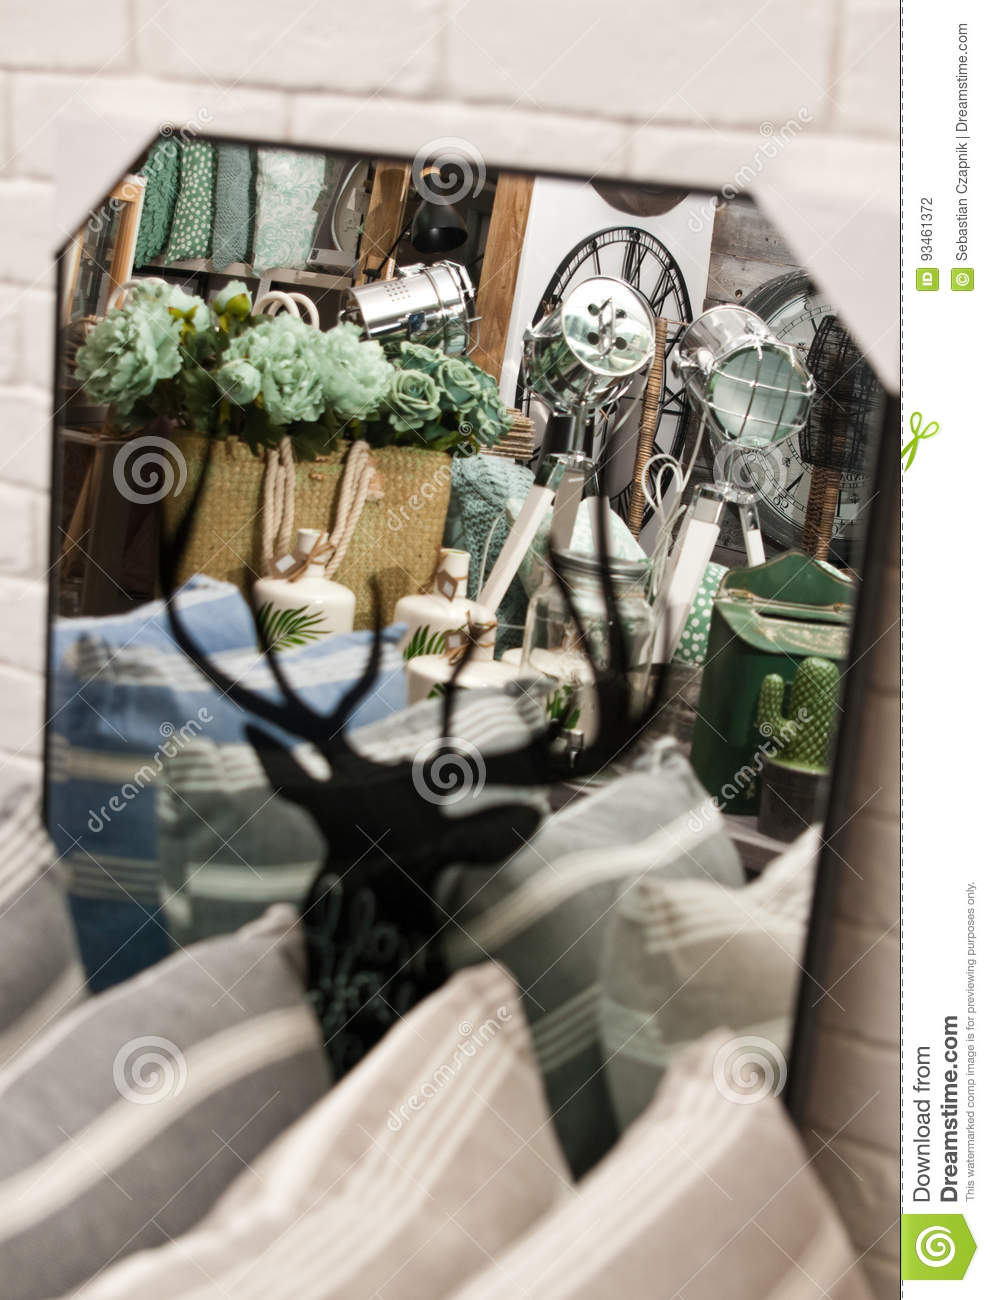 Home decorations shop interior stock photo image of - Home interior deer pictures for sale ...